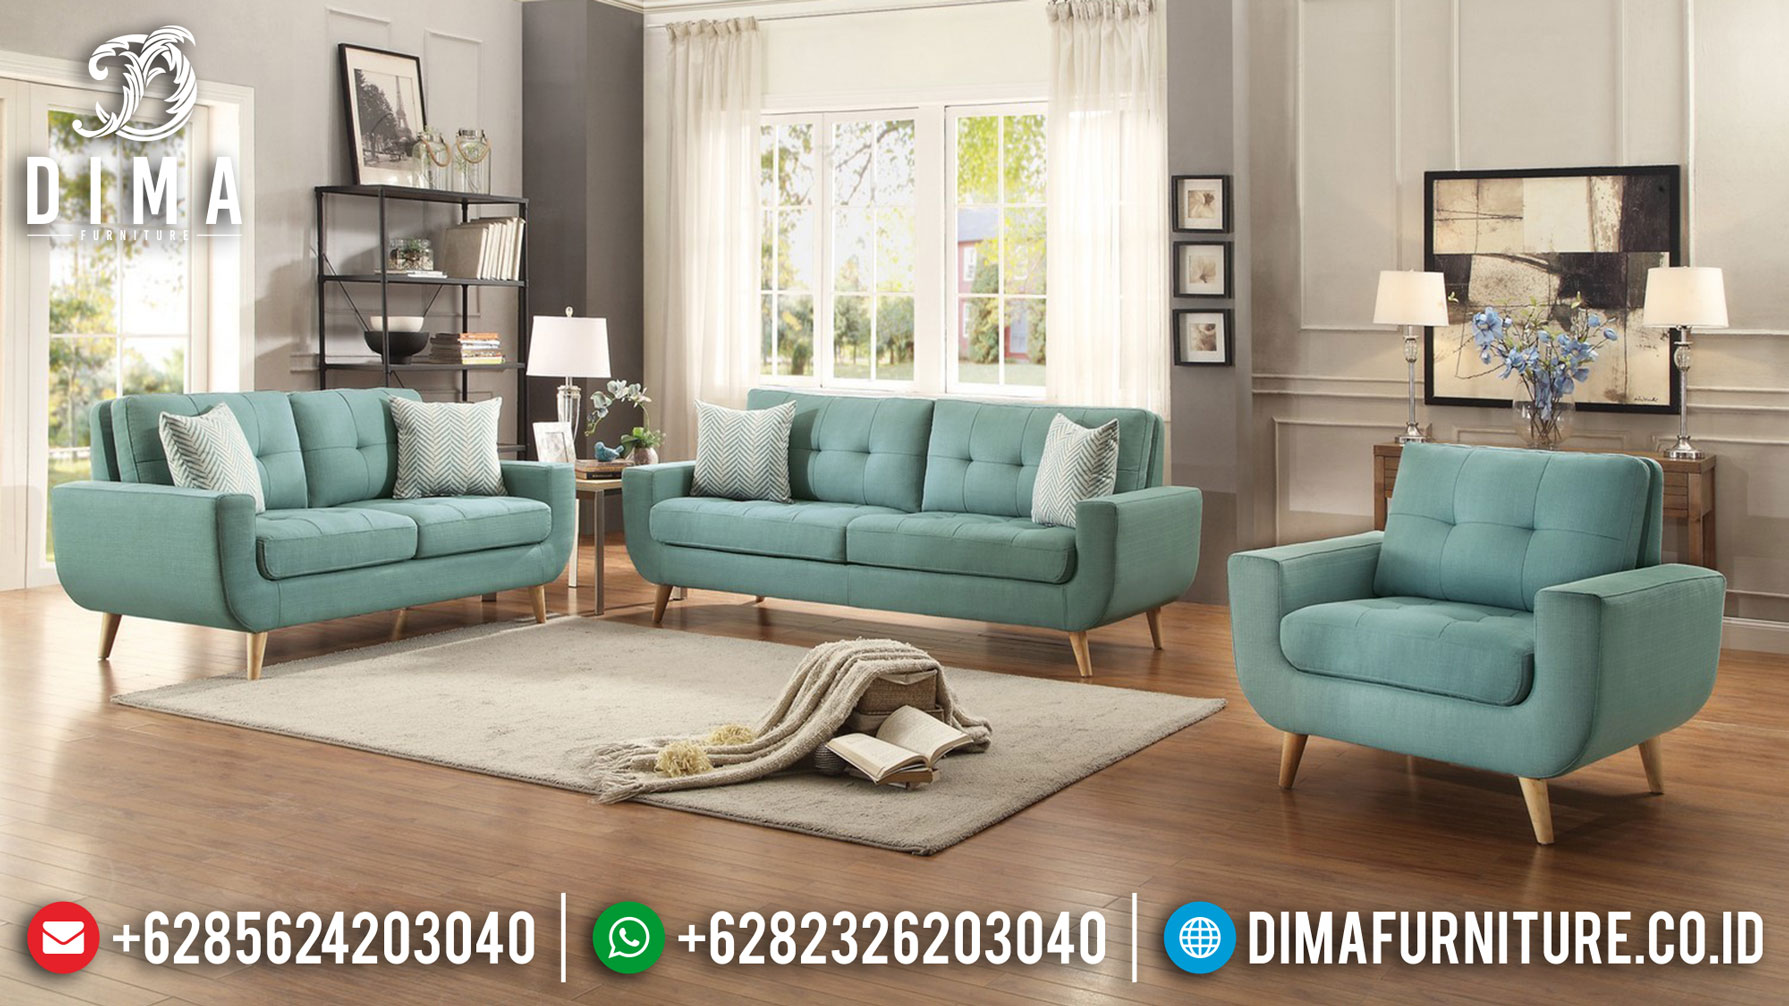 Allepo Sofa Tamu Minimalis Klasik Luxury Natural Jati Furniture Jepara TTJ-1269